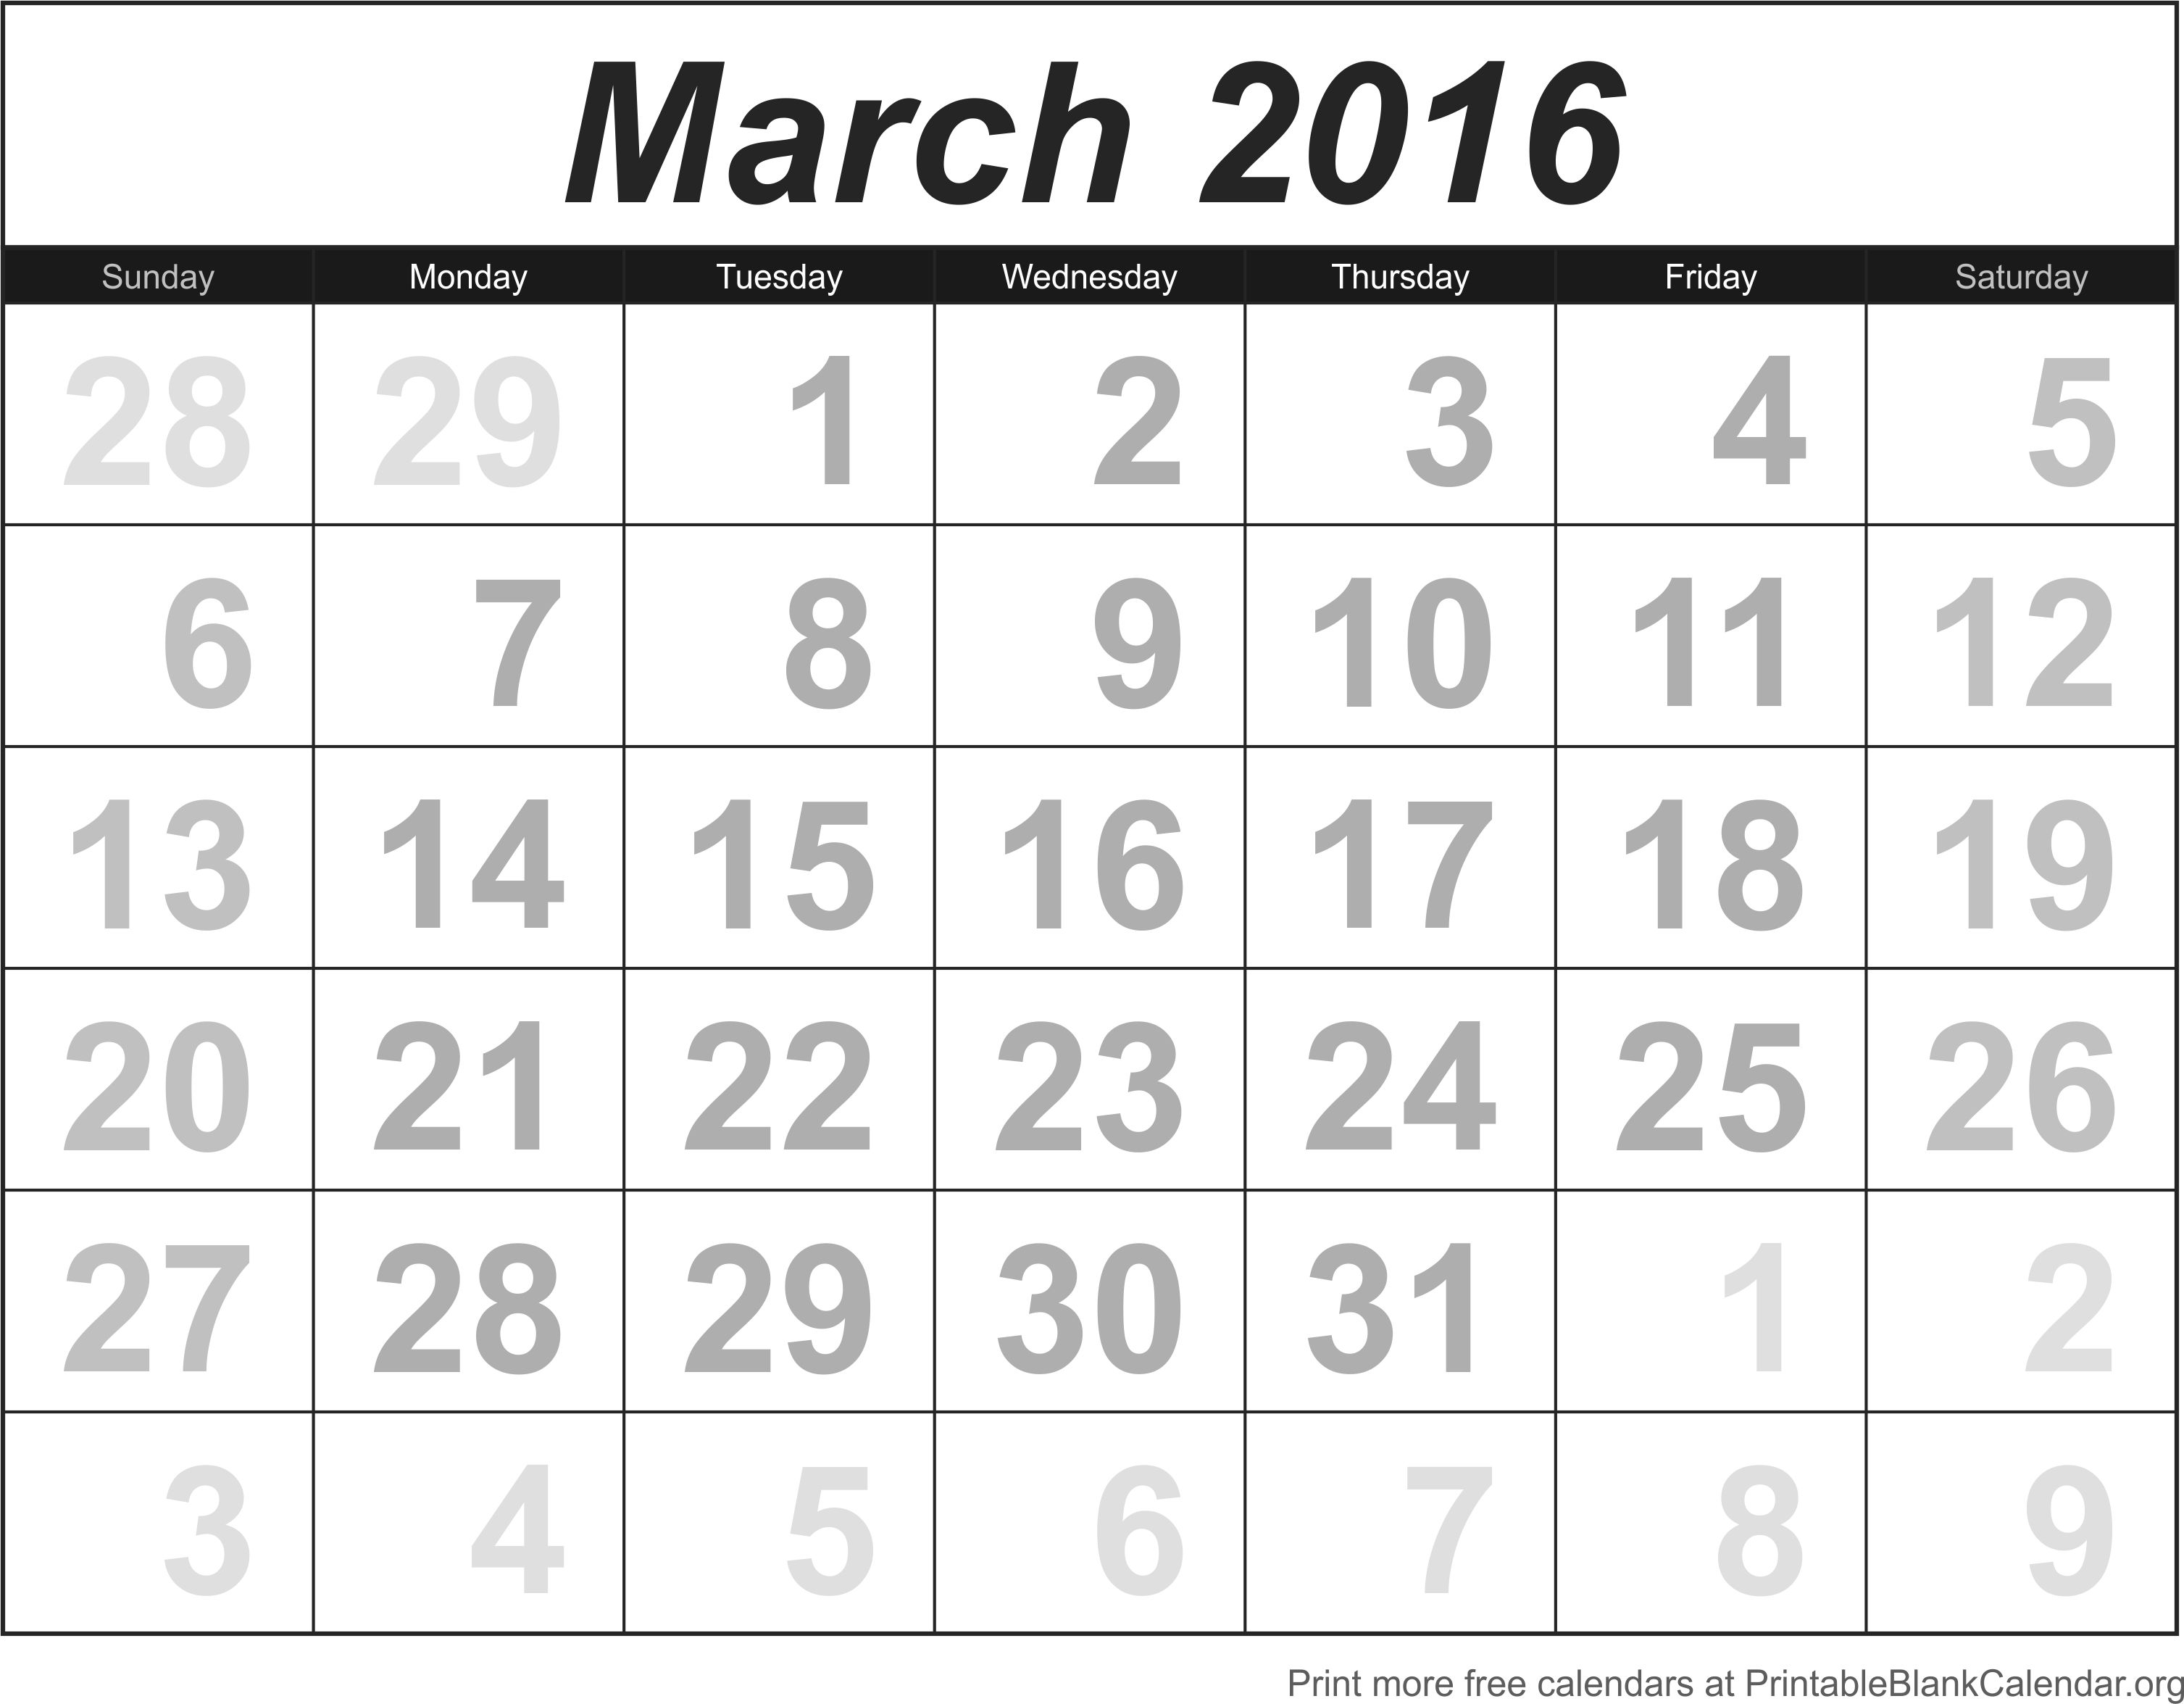 Blank Calendar With Numbers : Free printable calendar numbers for march images